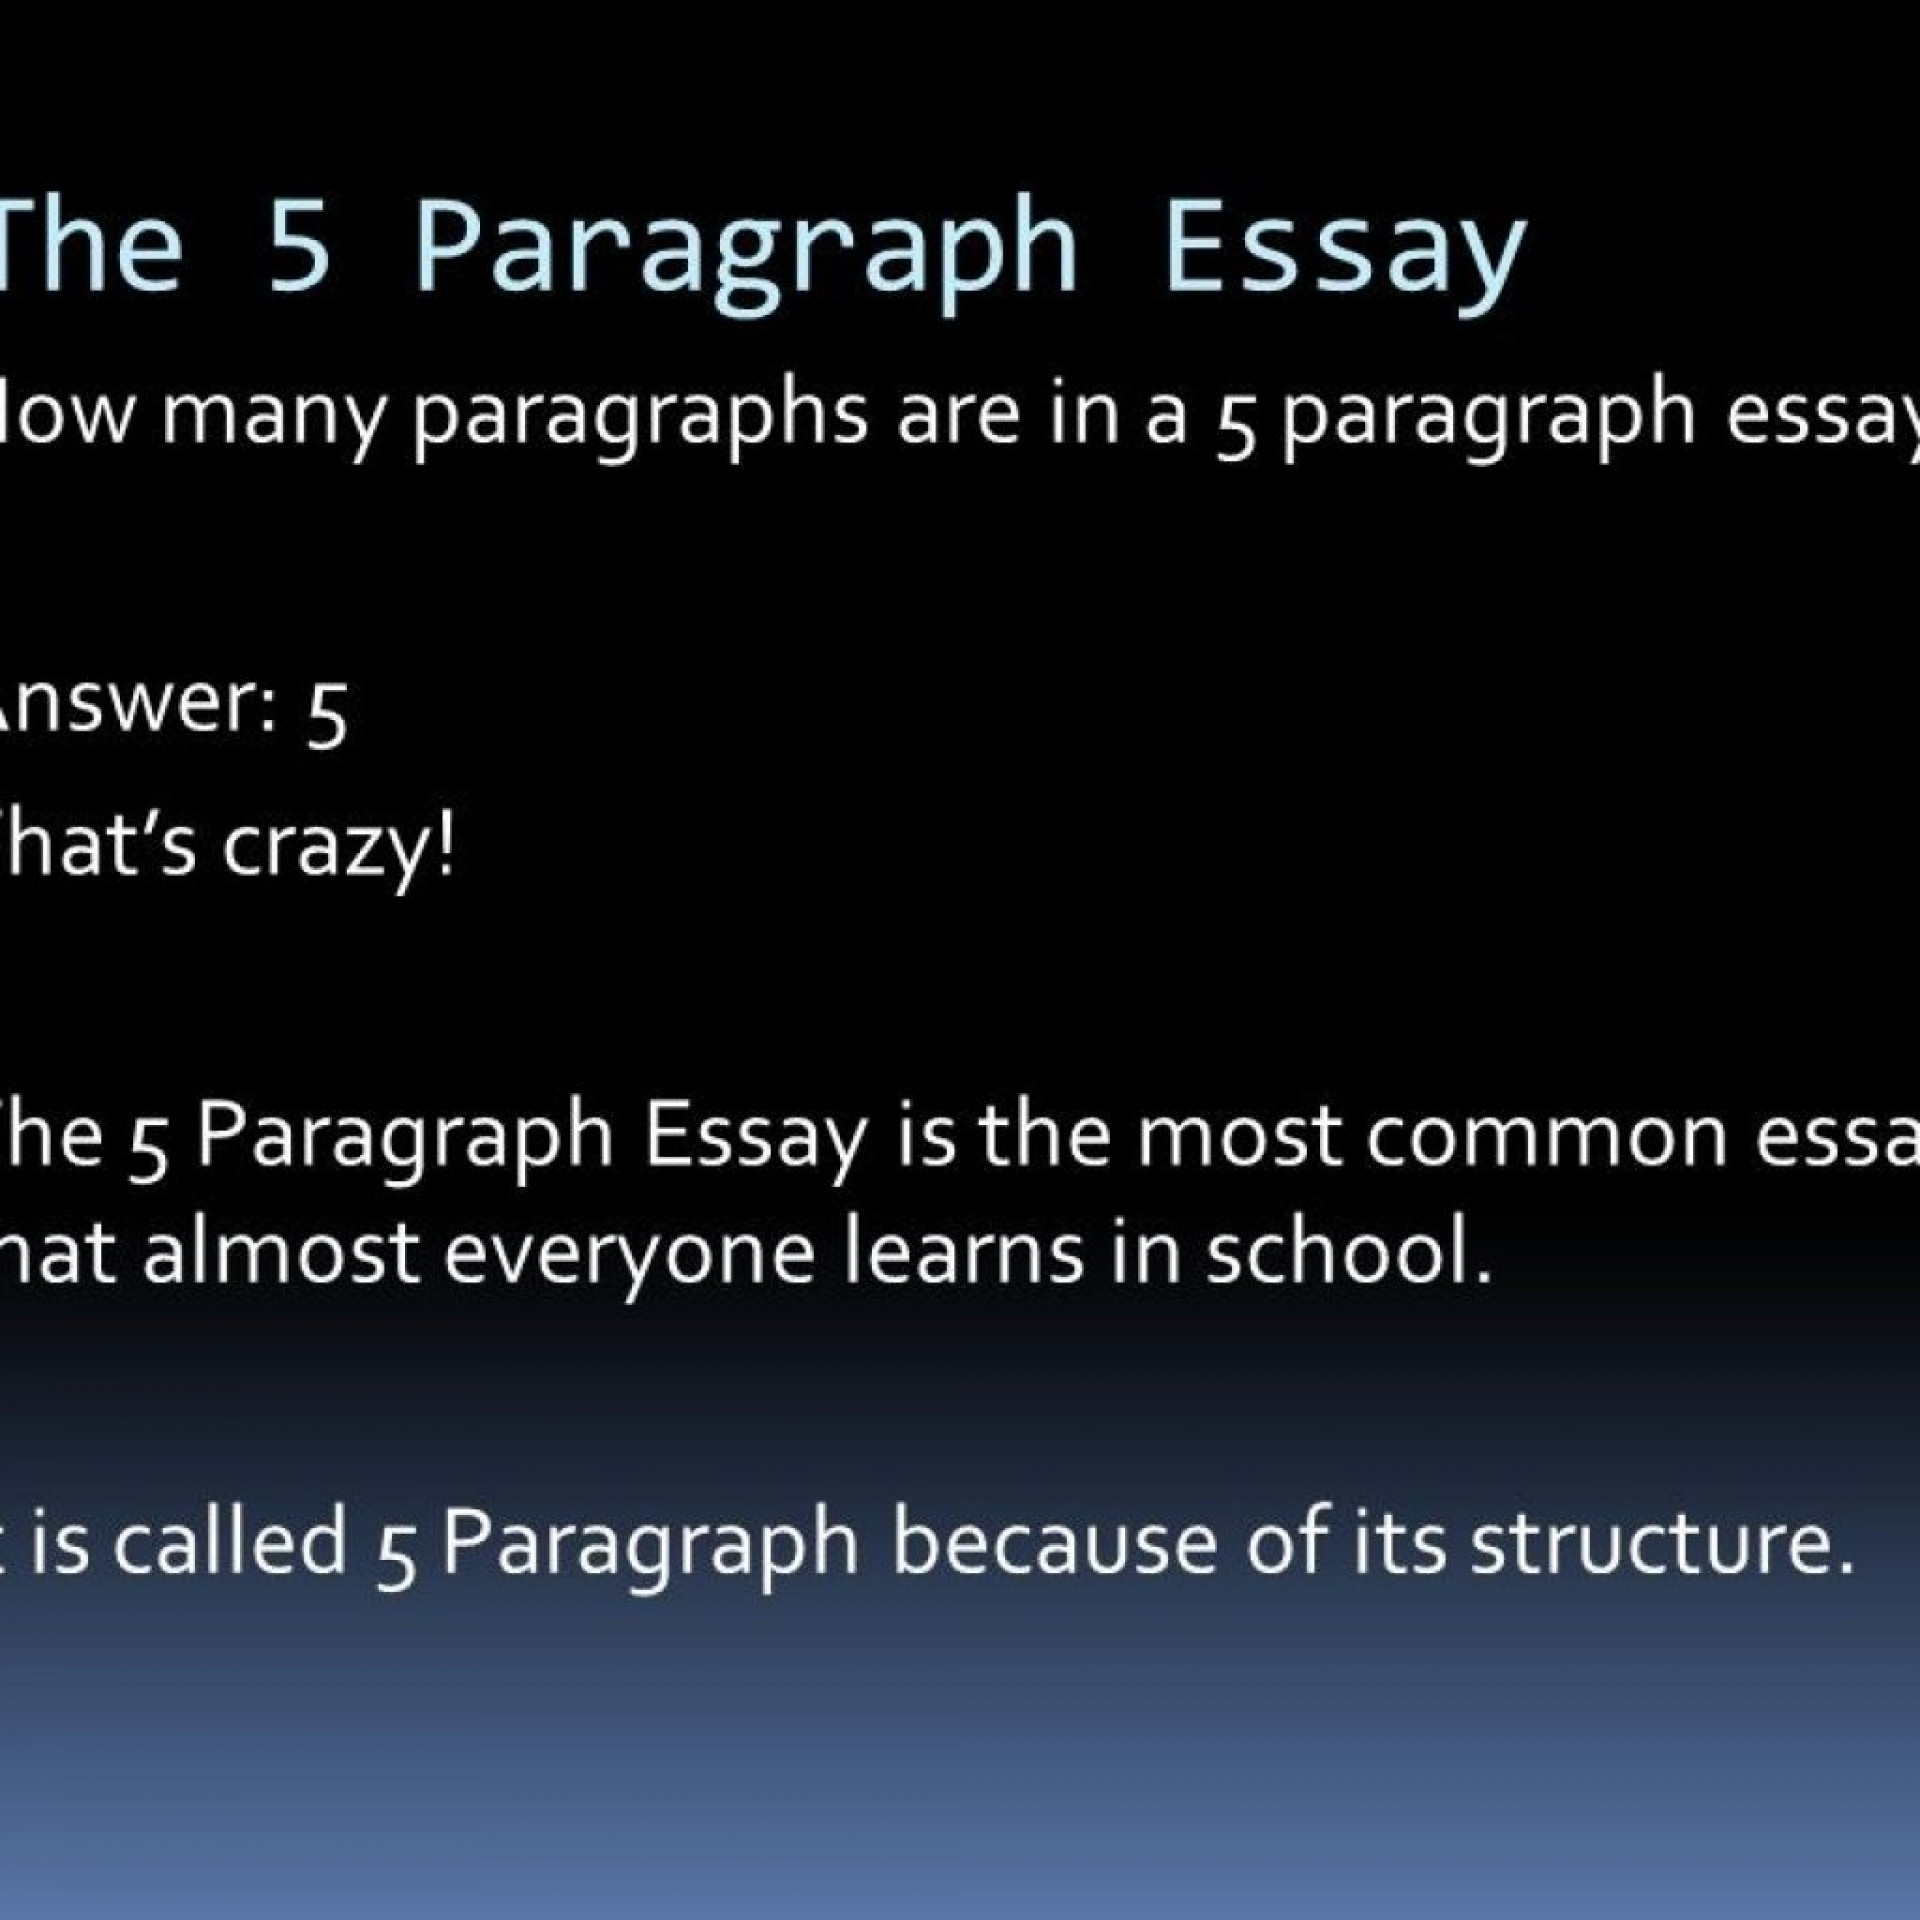 001 Essay Example How Many Sentences Are In 2867177336 Best A 5 Paragraph Short 1920